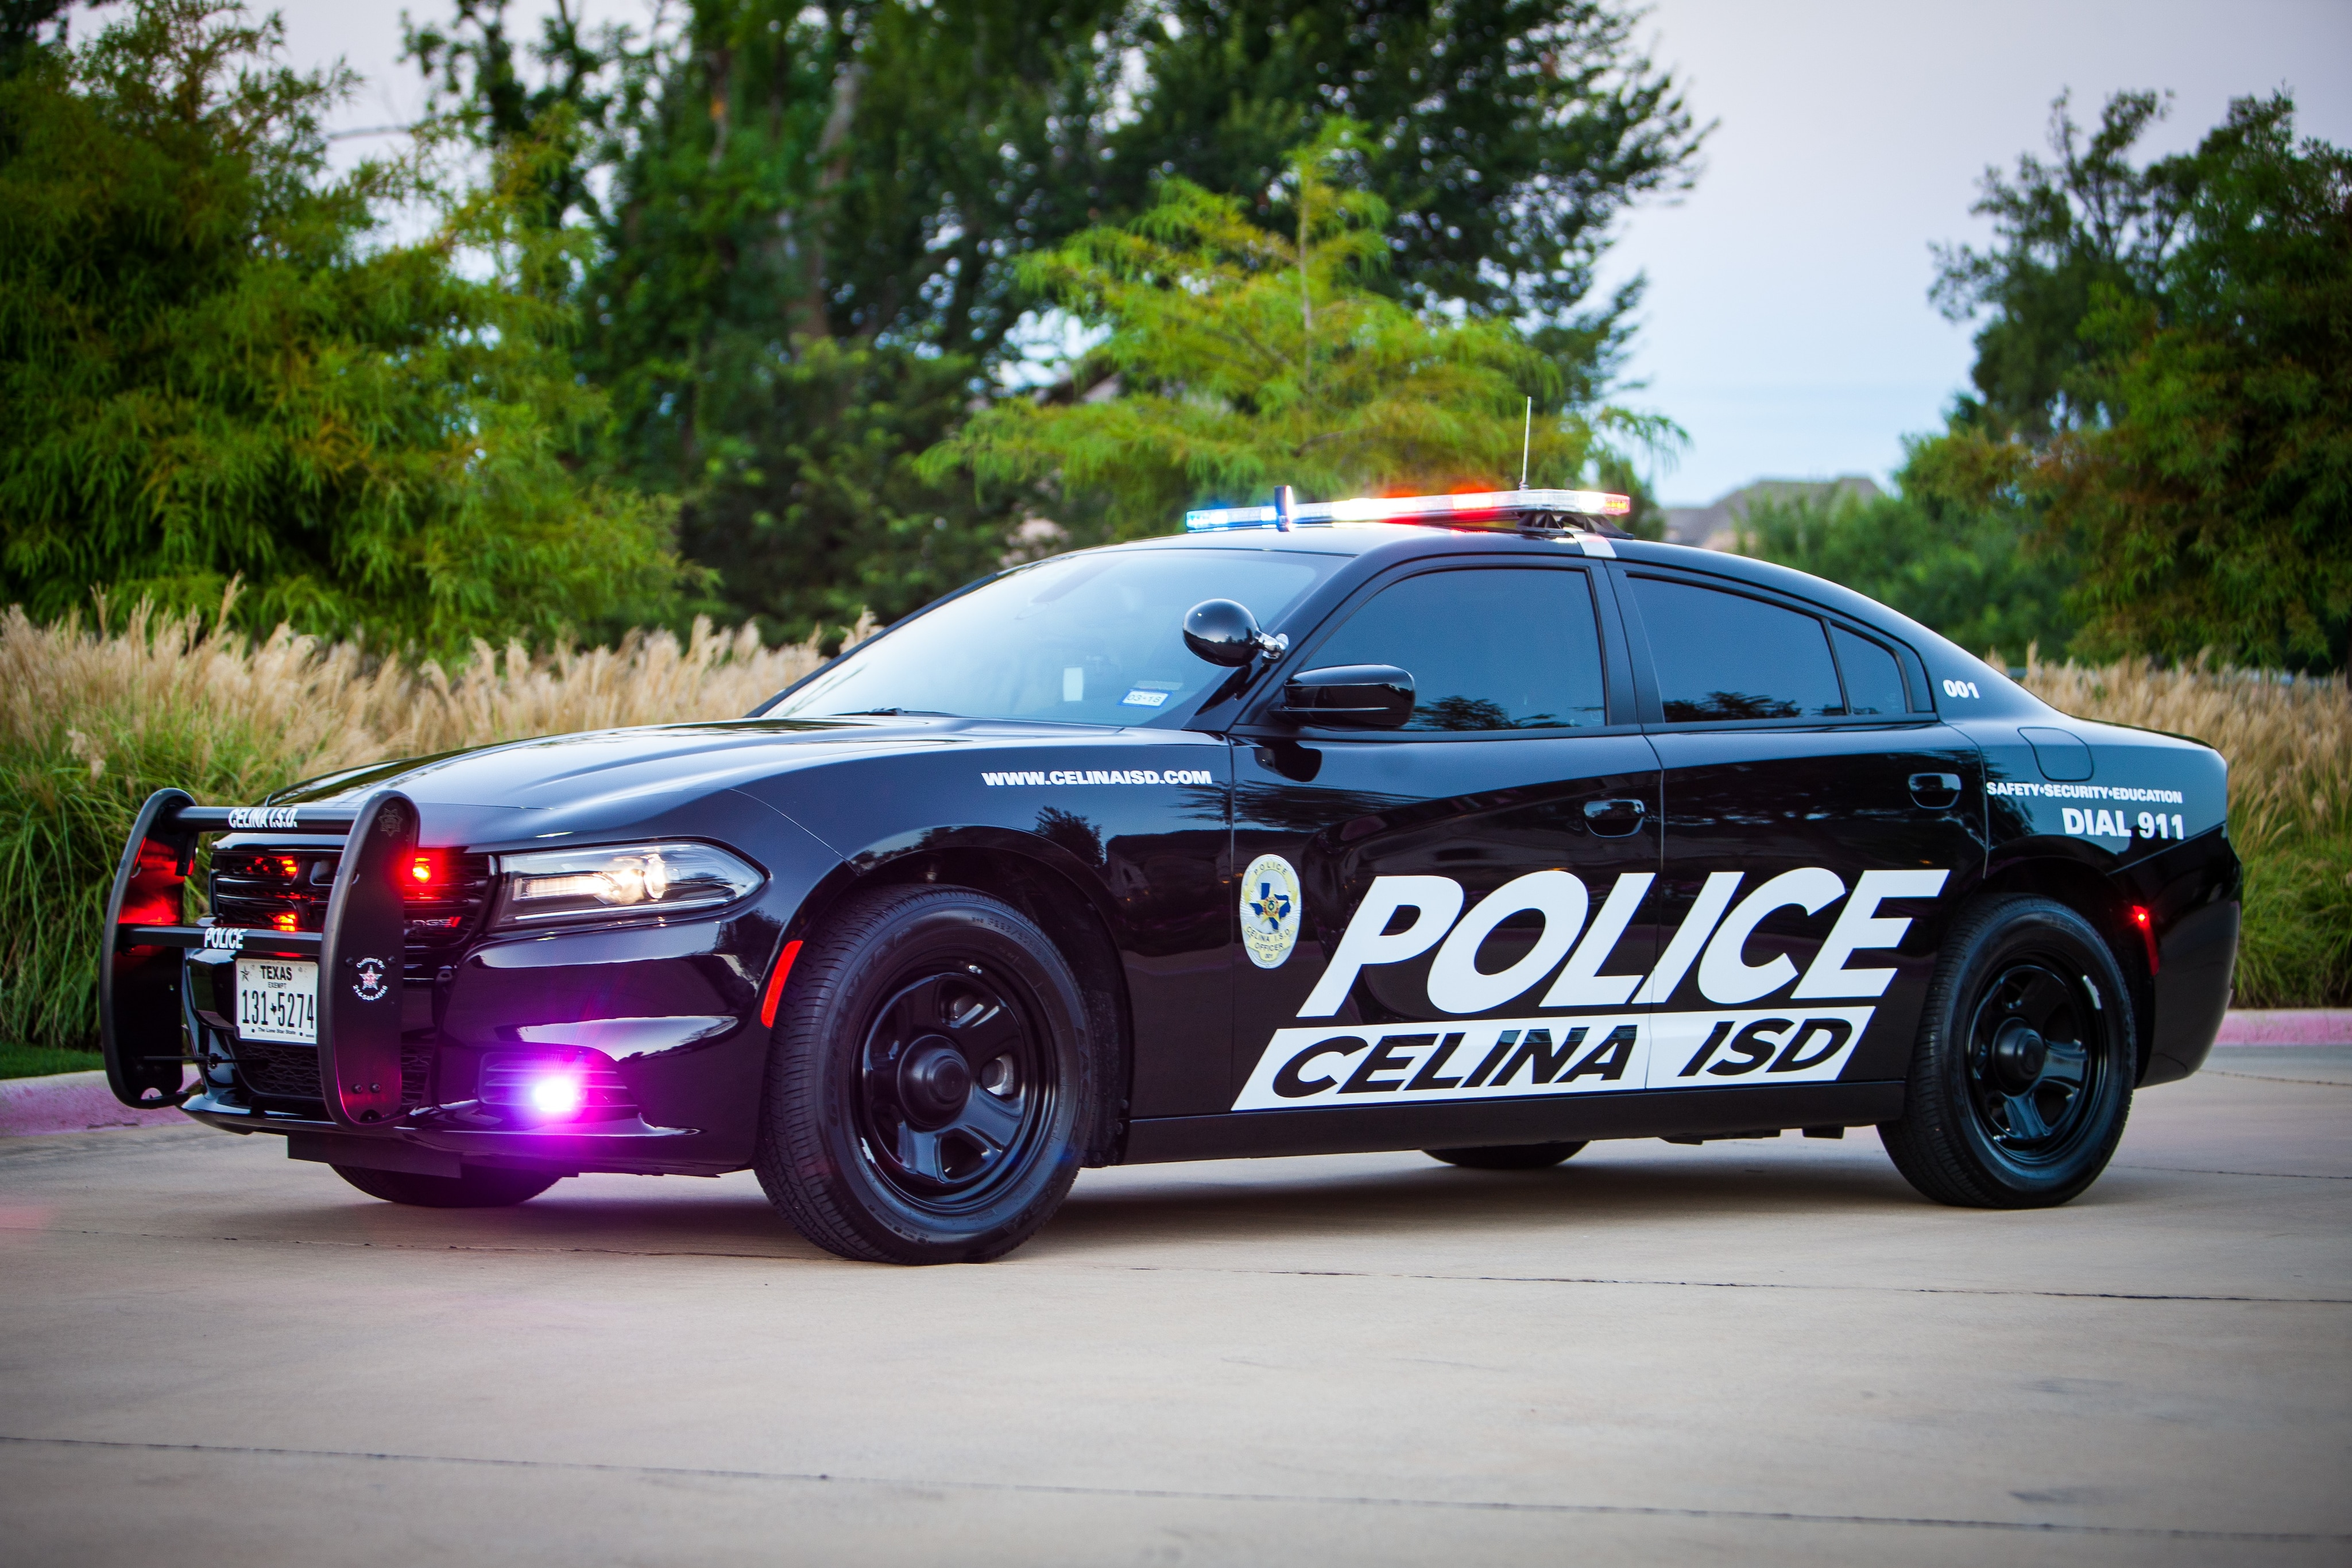 Celina, TX police car supplied by Dodge City of McKinney